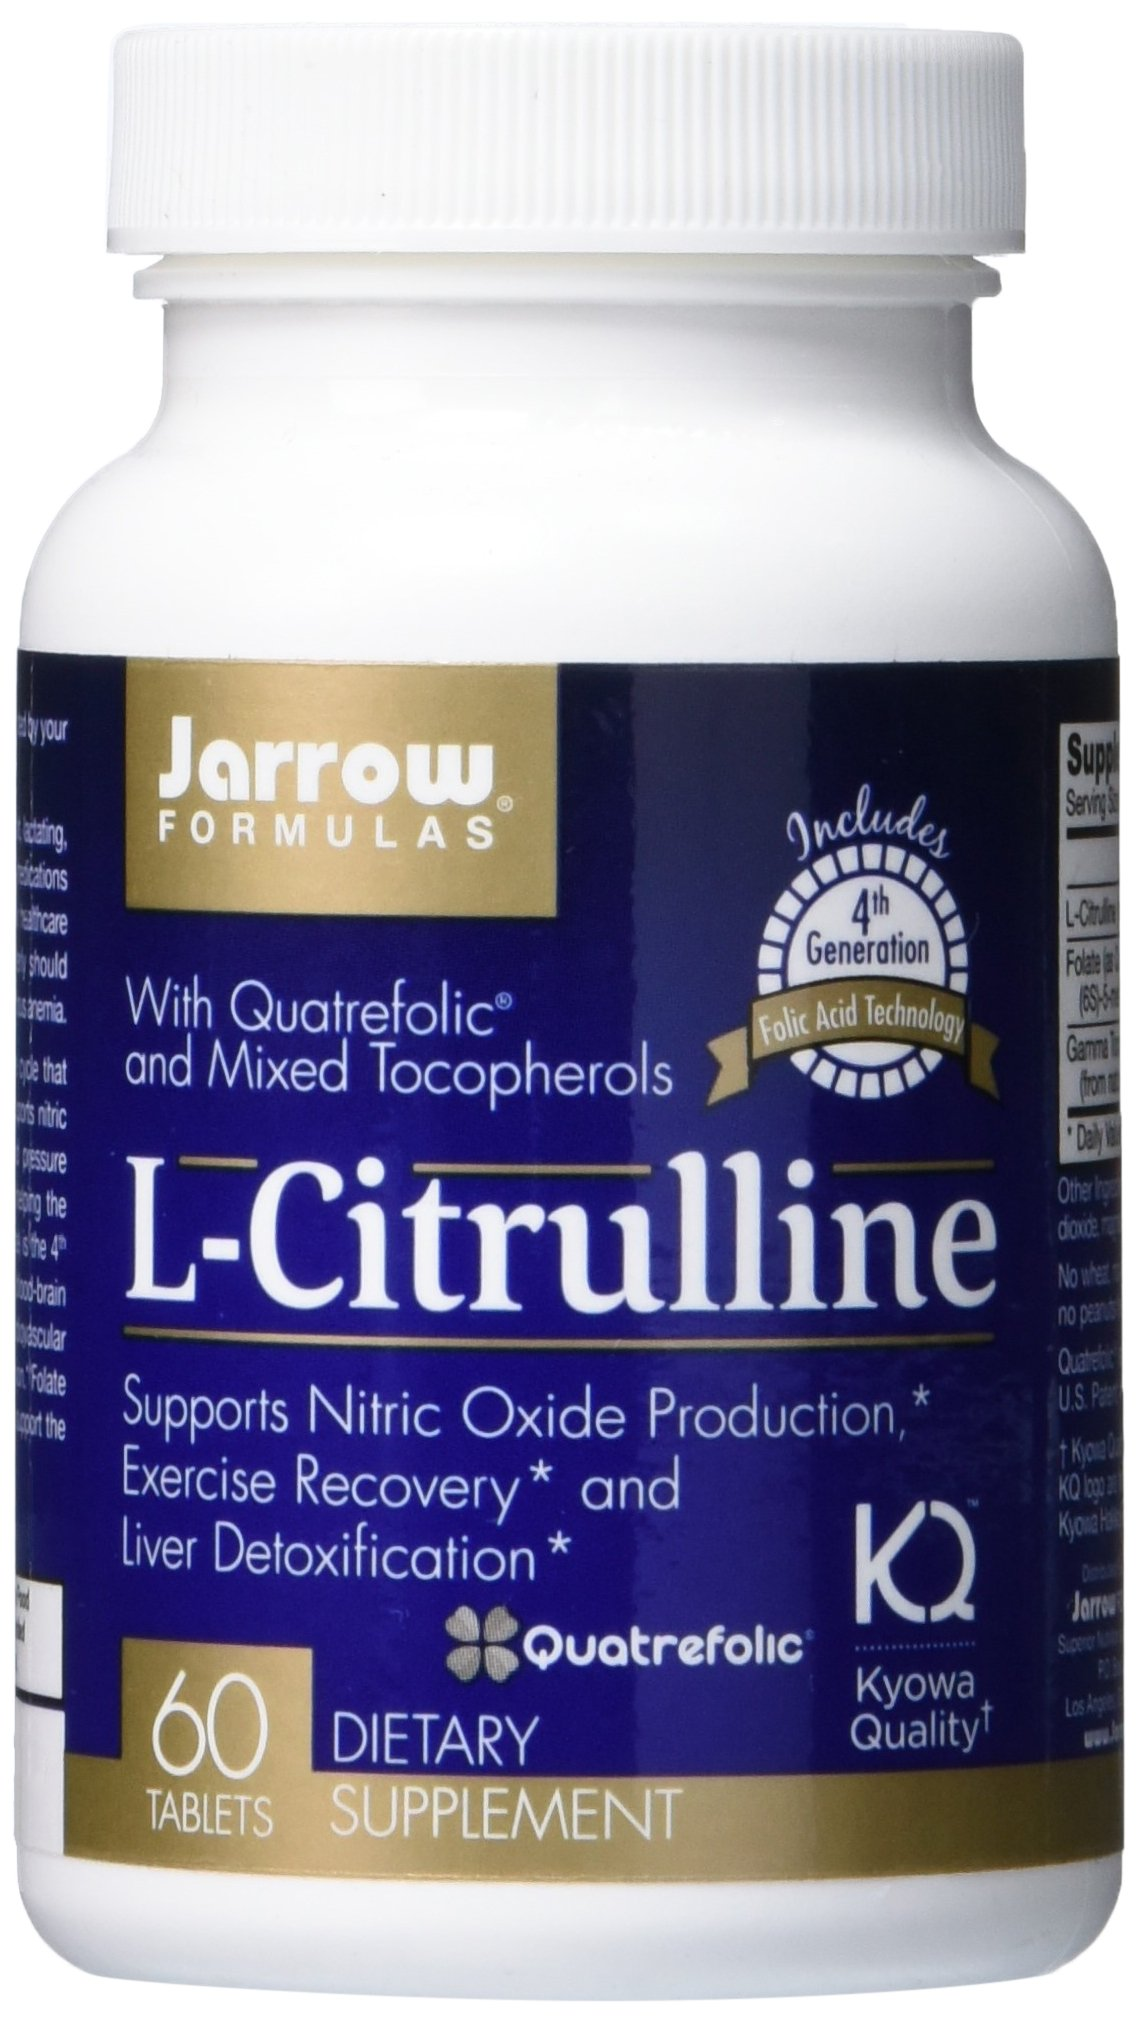 Jarrow Formulas L-Citrulline, Supports Liver Health, 60 Tabs by Jarrow Formulas